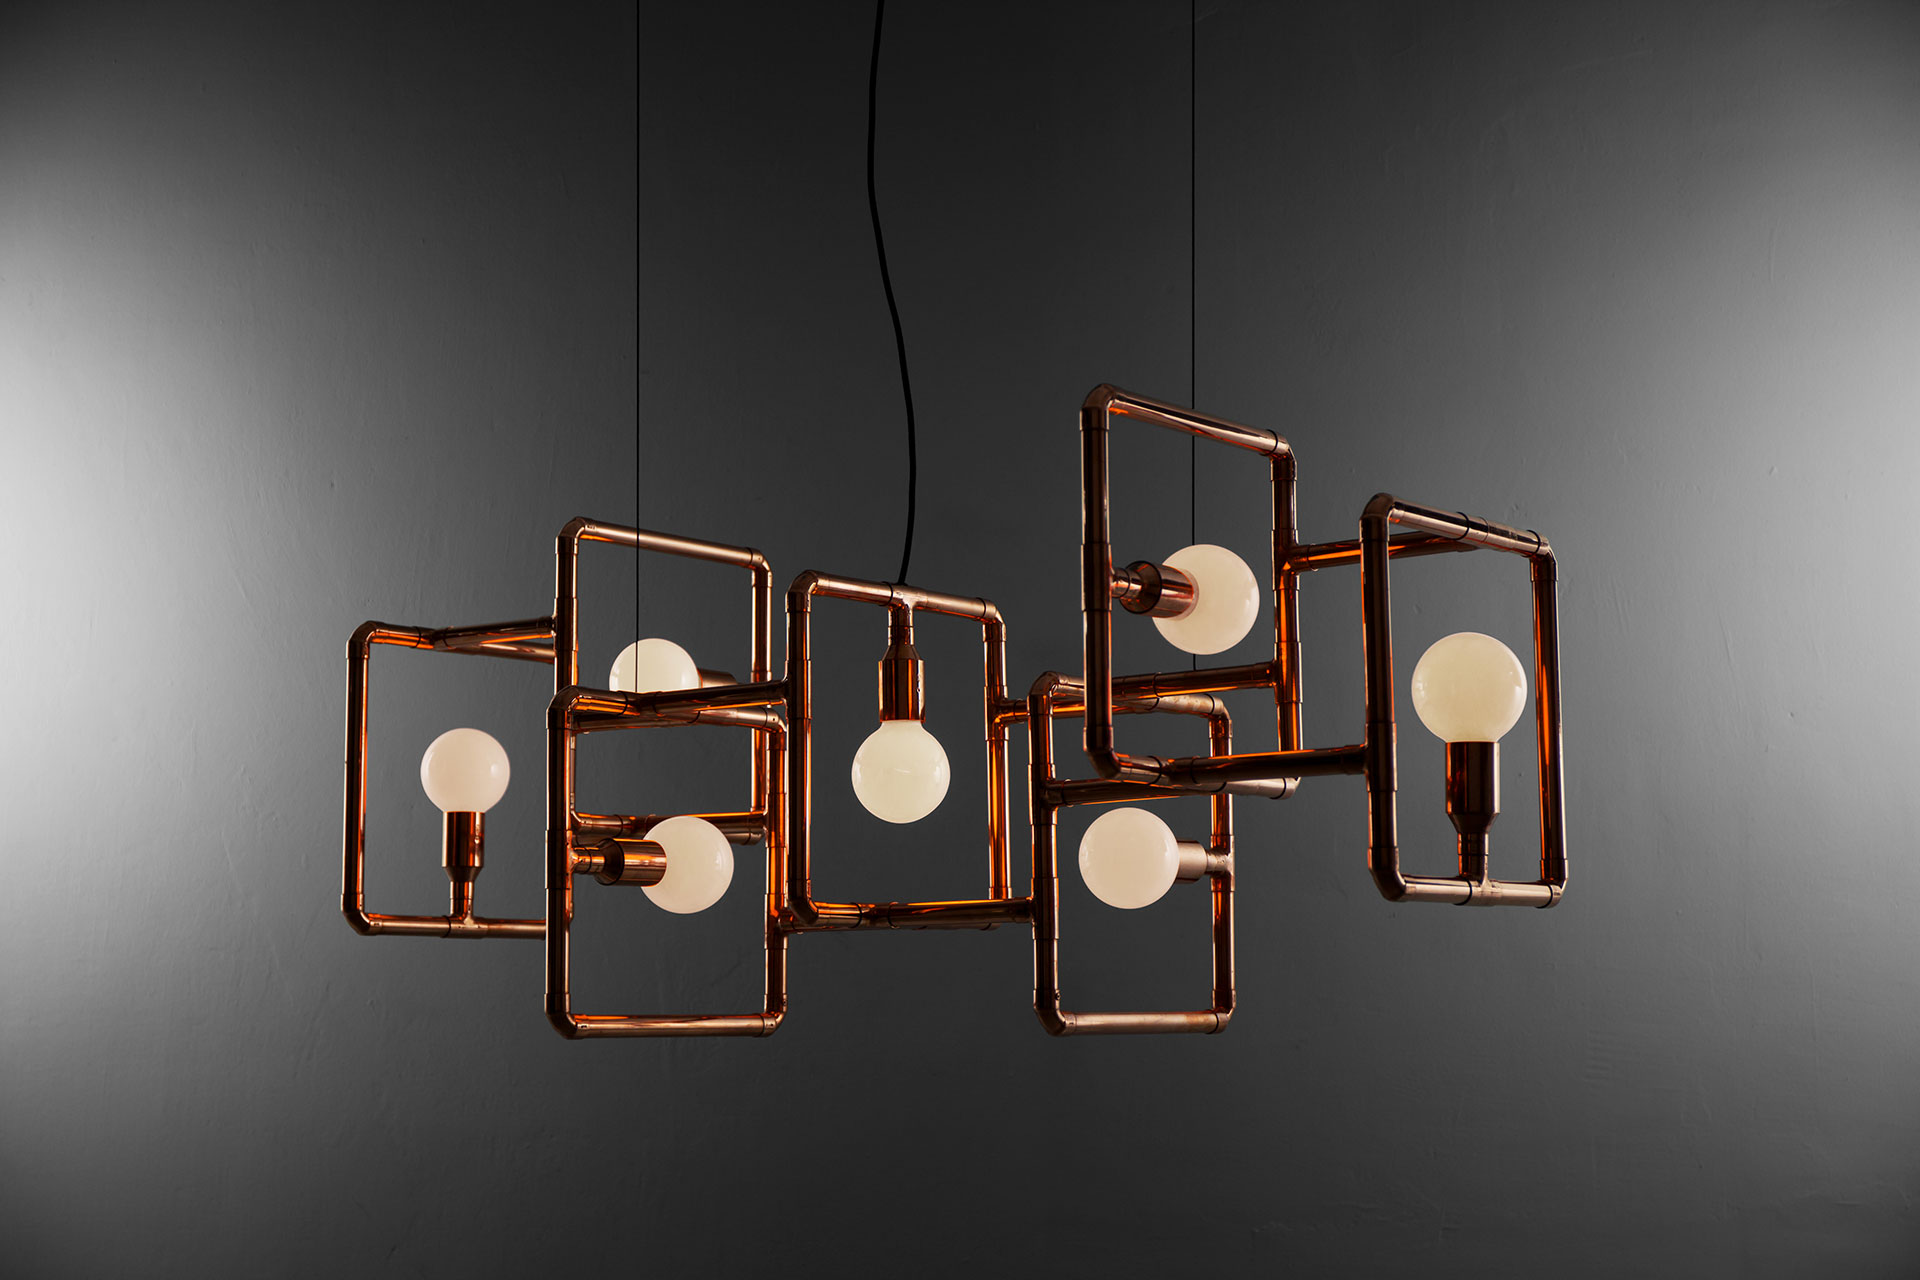 Conceptual design ceiling lamp made of copper tubing in industrial style interior